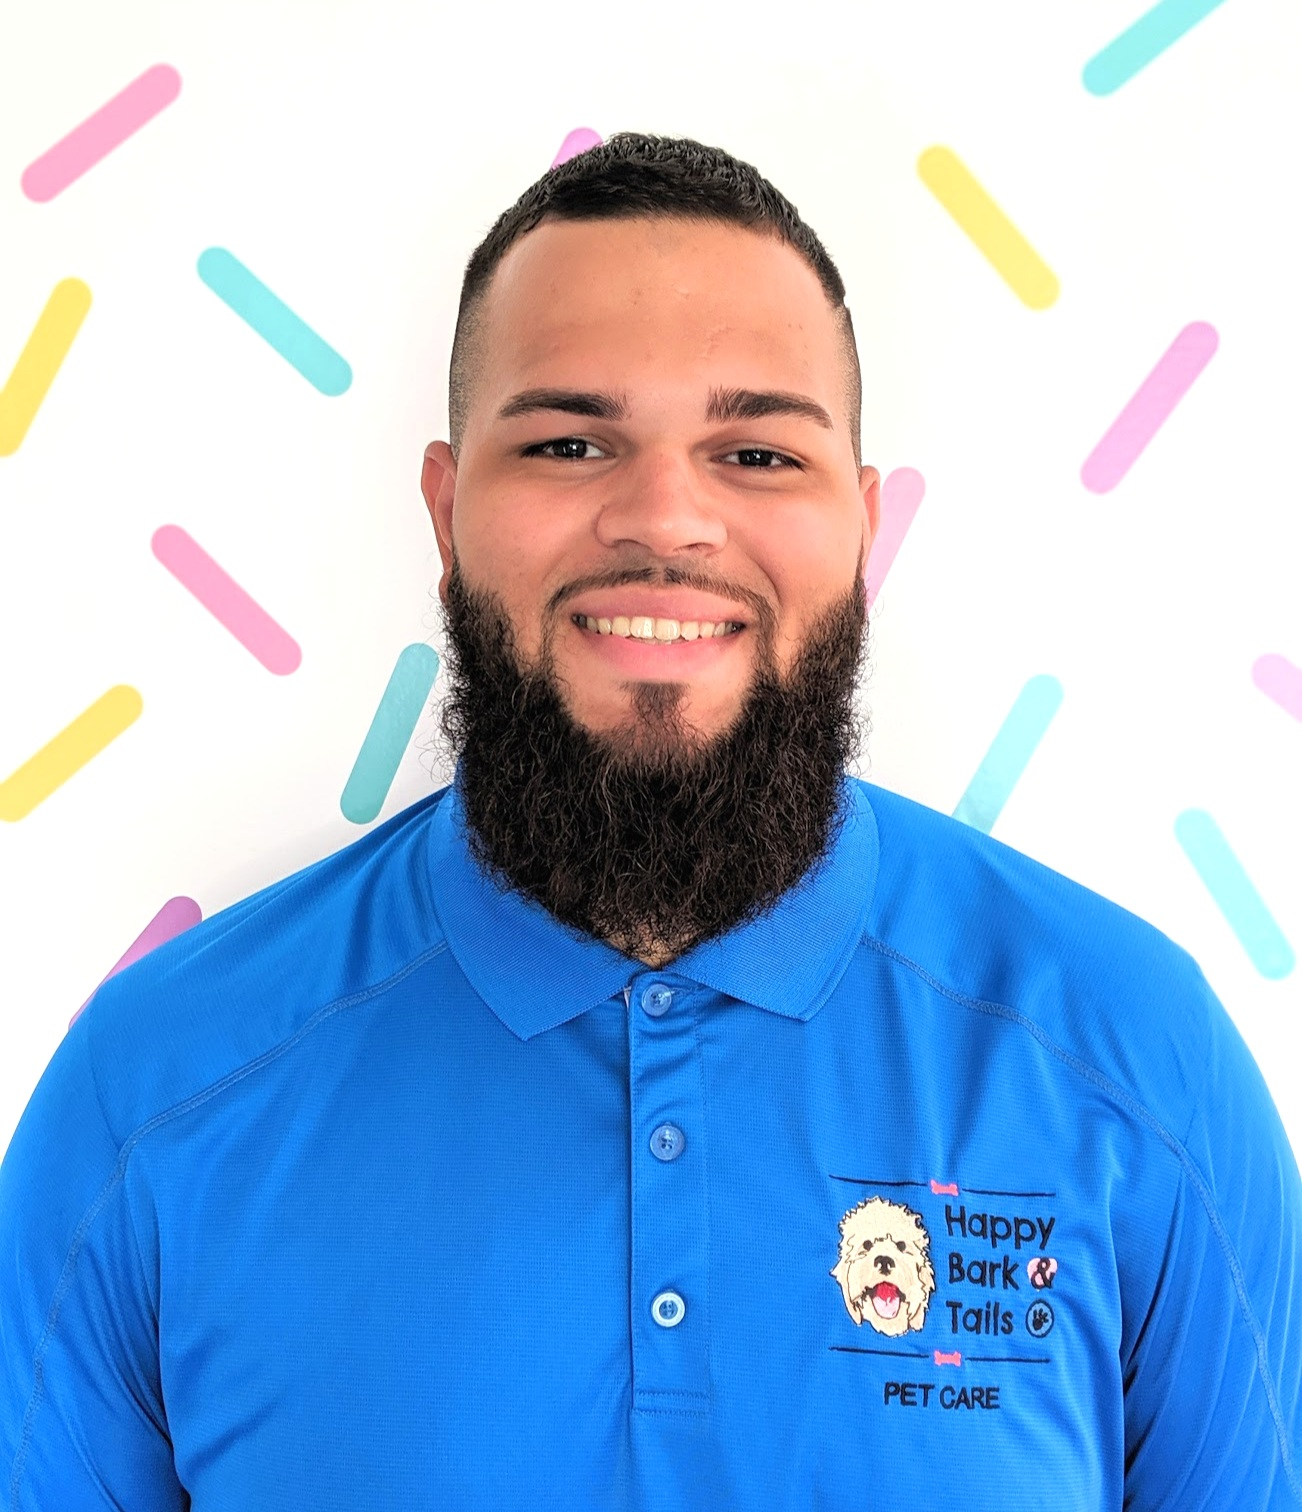 Juan(pet care specialist) - Passionate about all things dogs, Juan is a Brooklyn, NY native. There he volunteered at many different shelters helping on daily walks for the unadopted dogs.Juan proudly joined his sister Madeline at Happy Bark & Tails full-time in 2018. At HBT he is a trusted dog walker, attentive sitter and is also behind the scene for all creative projects. Juan is PAWSOME!